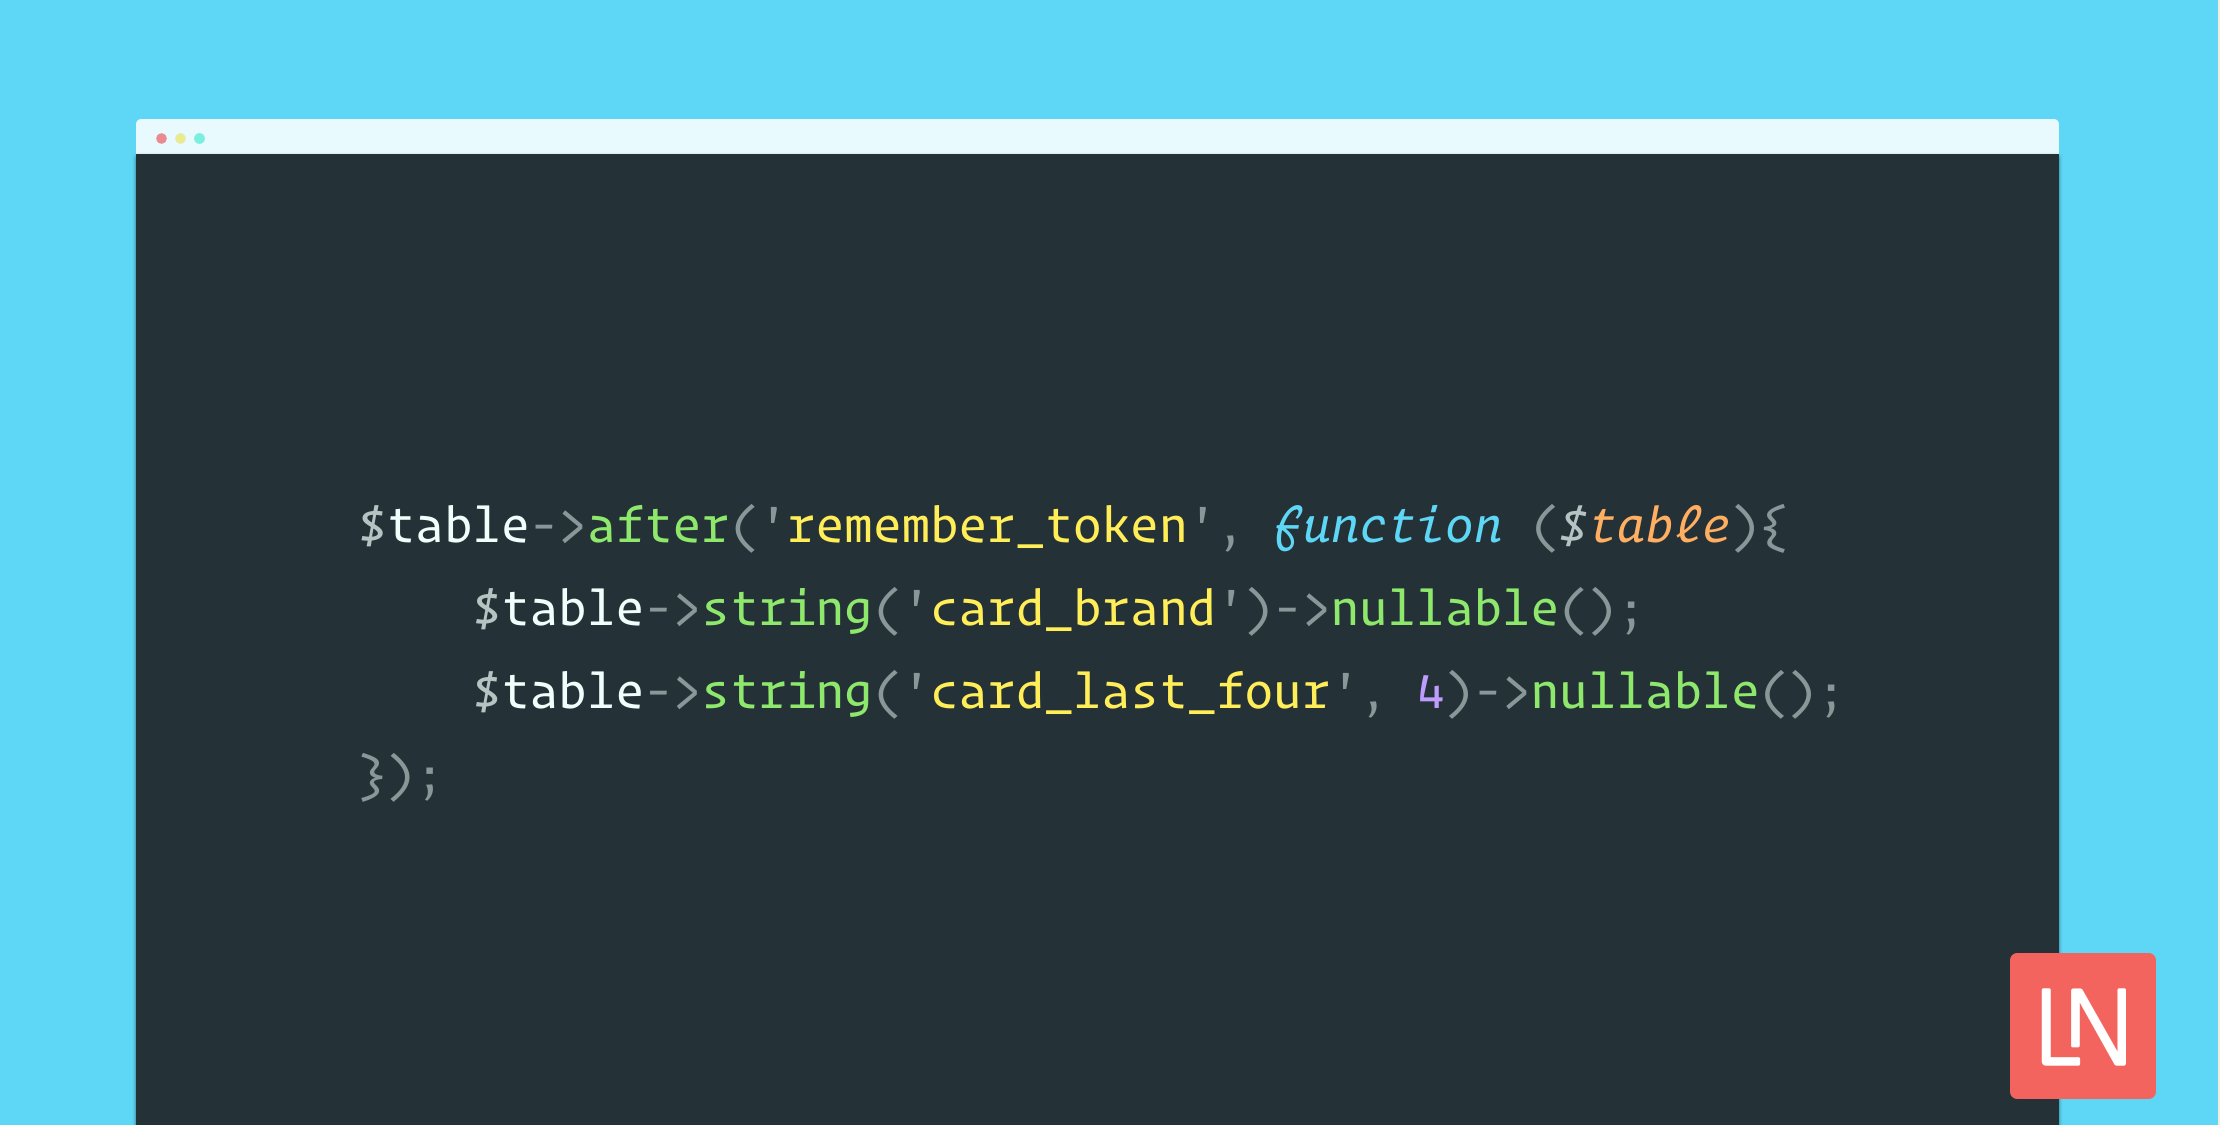 laravel-migrations-after-featured.png